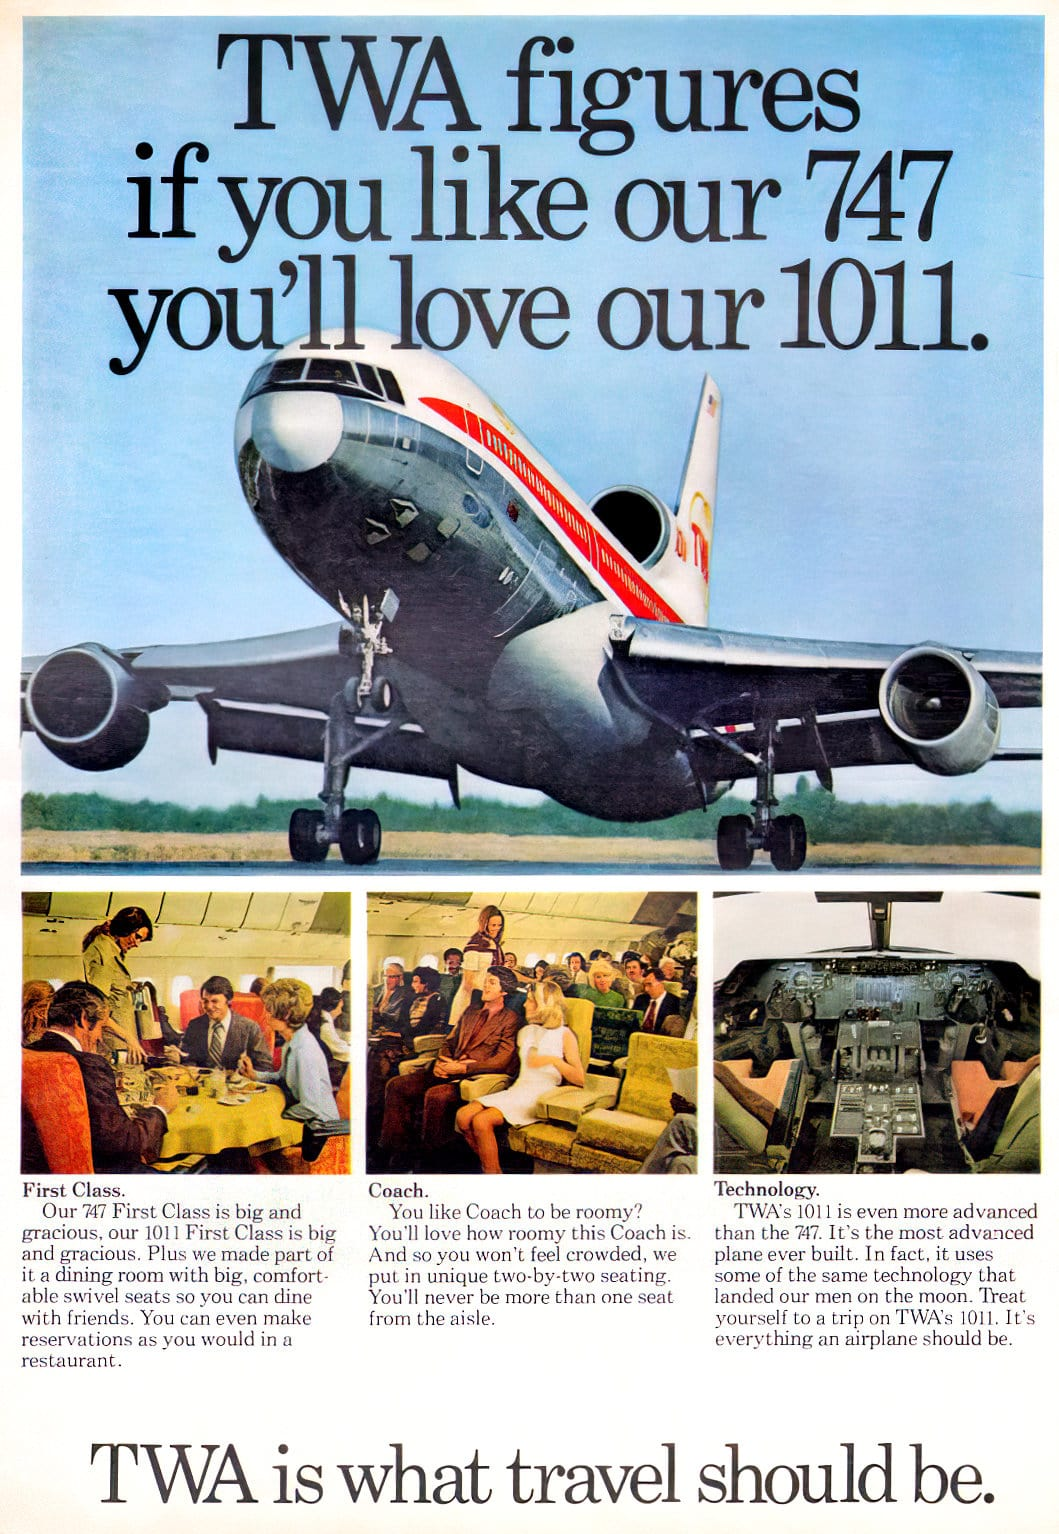 TWA what travel should be (1973)